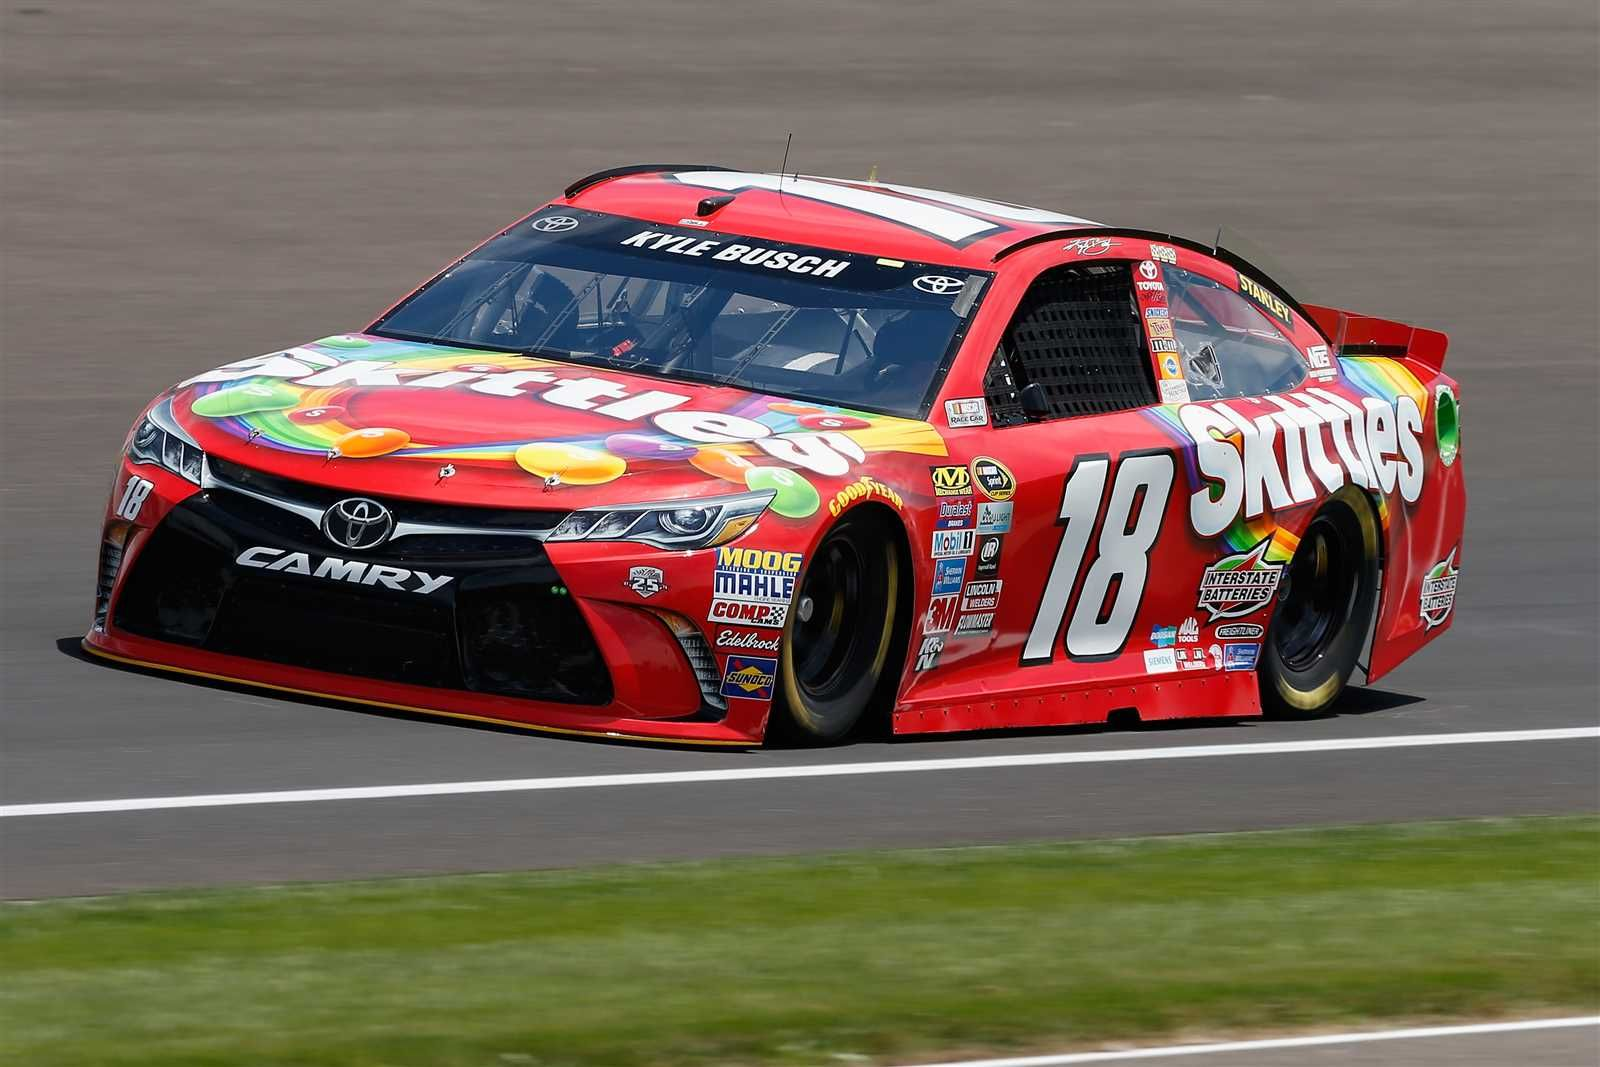 Kyle Busch will start first in the No. 18 Joe Gibbs Racing Toyota. - Crew Chief: Adam Stevens - Spotter: Tony Hirschman - Starting lineup: Indianapolis - Saturday, July 23, 2016